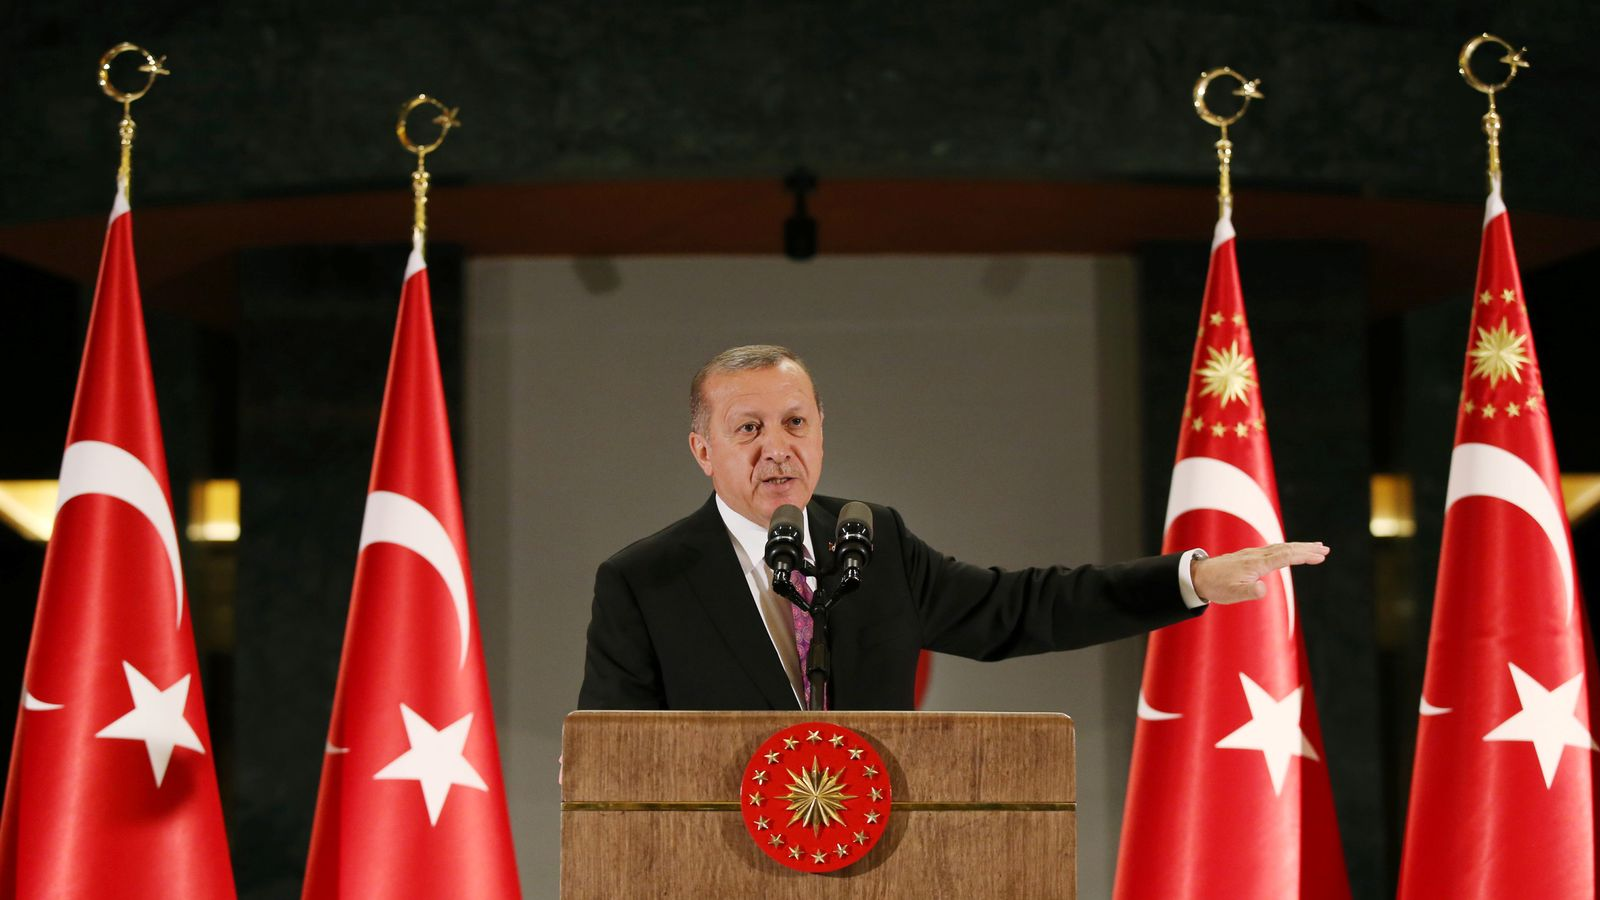 Erdogan: Turkey does not need the EU